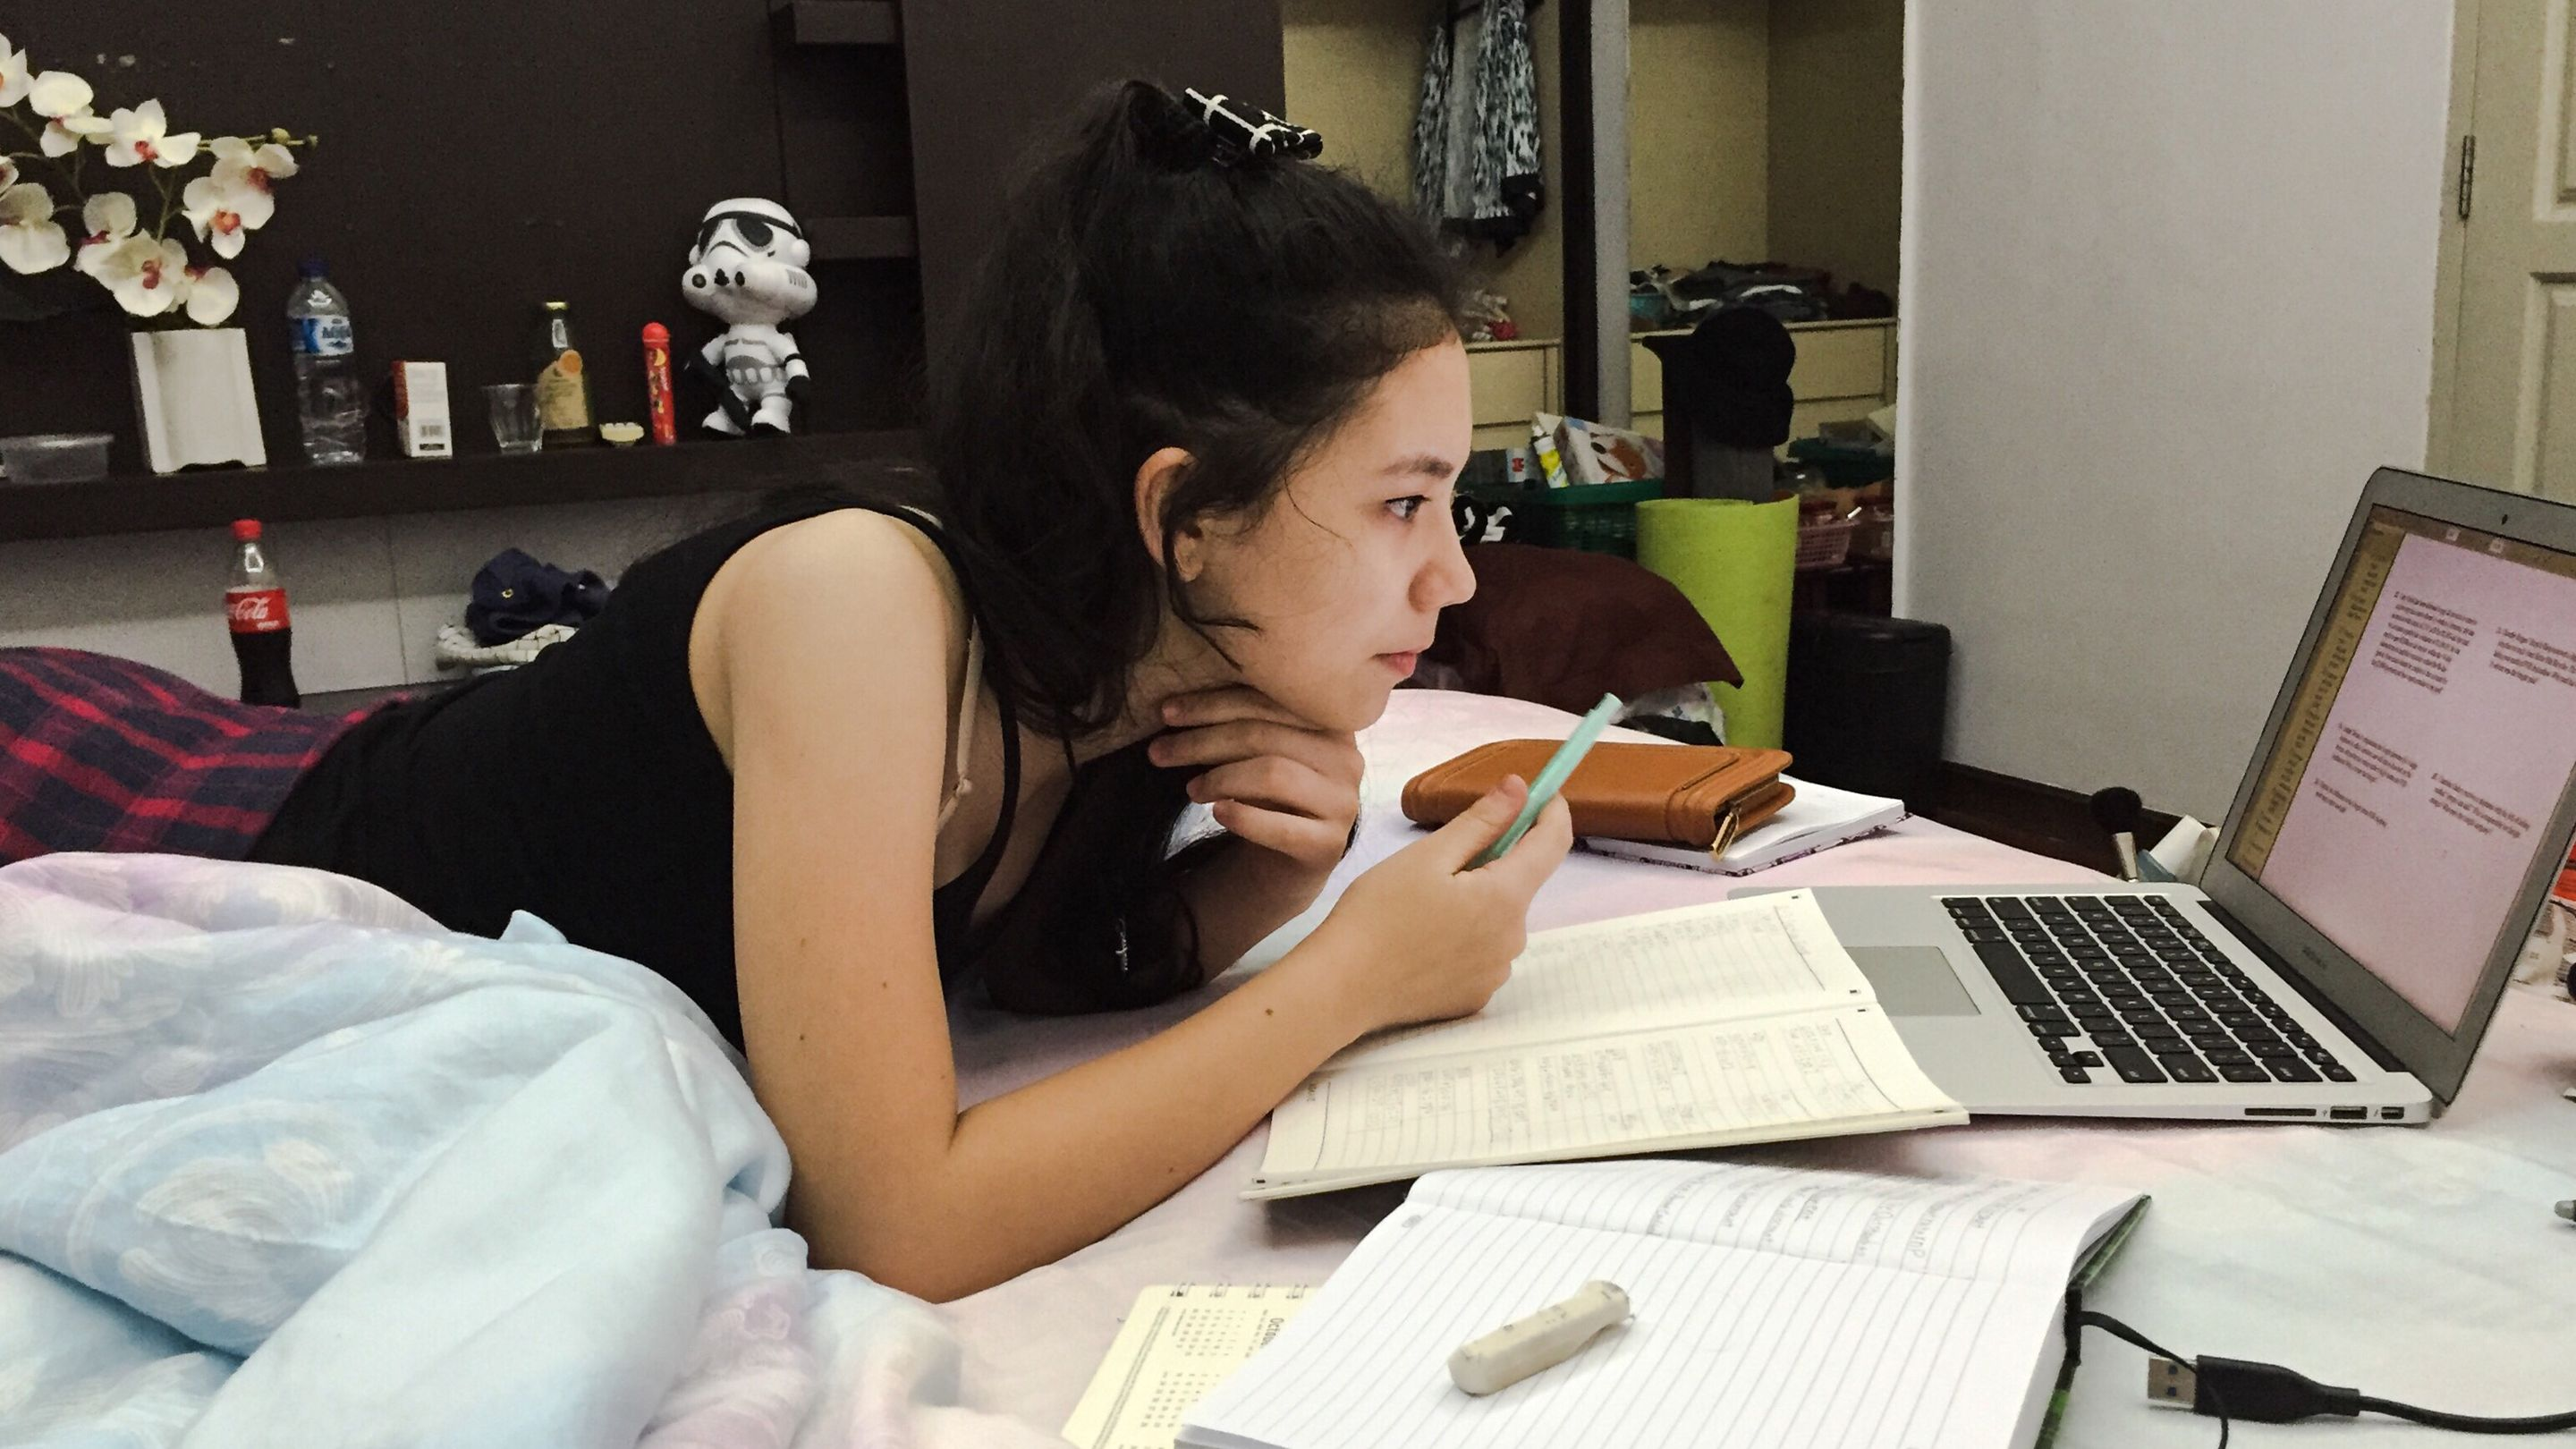 A student studying on her bed with a laptop, textbooks, and notebooks